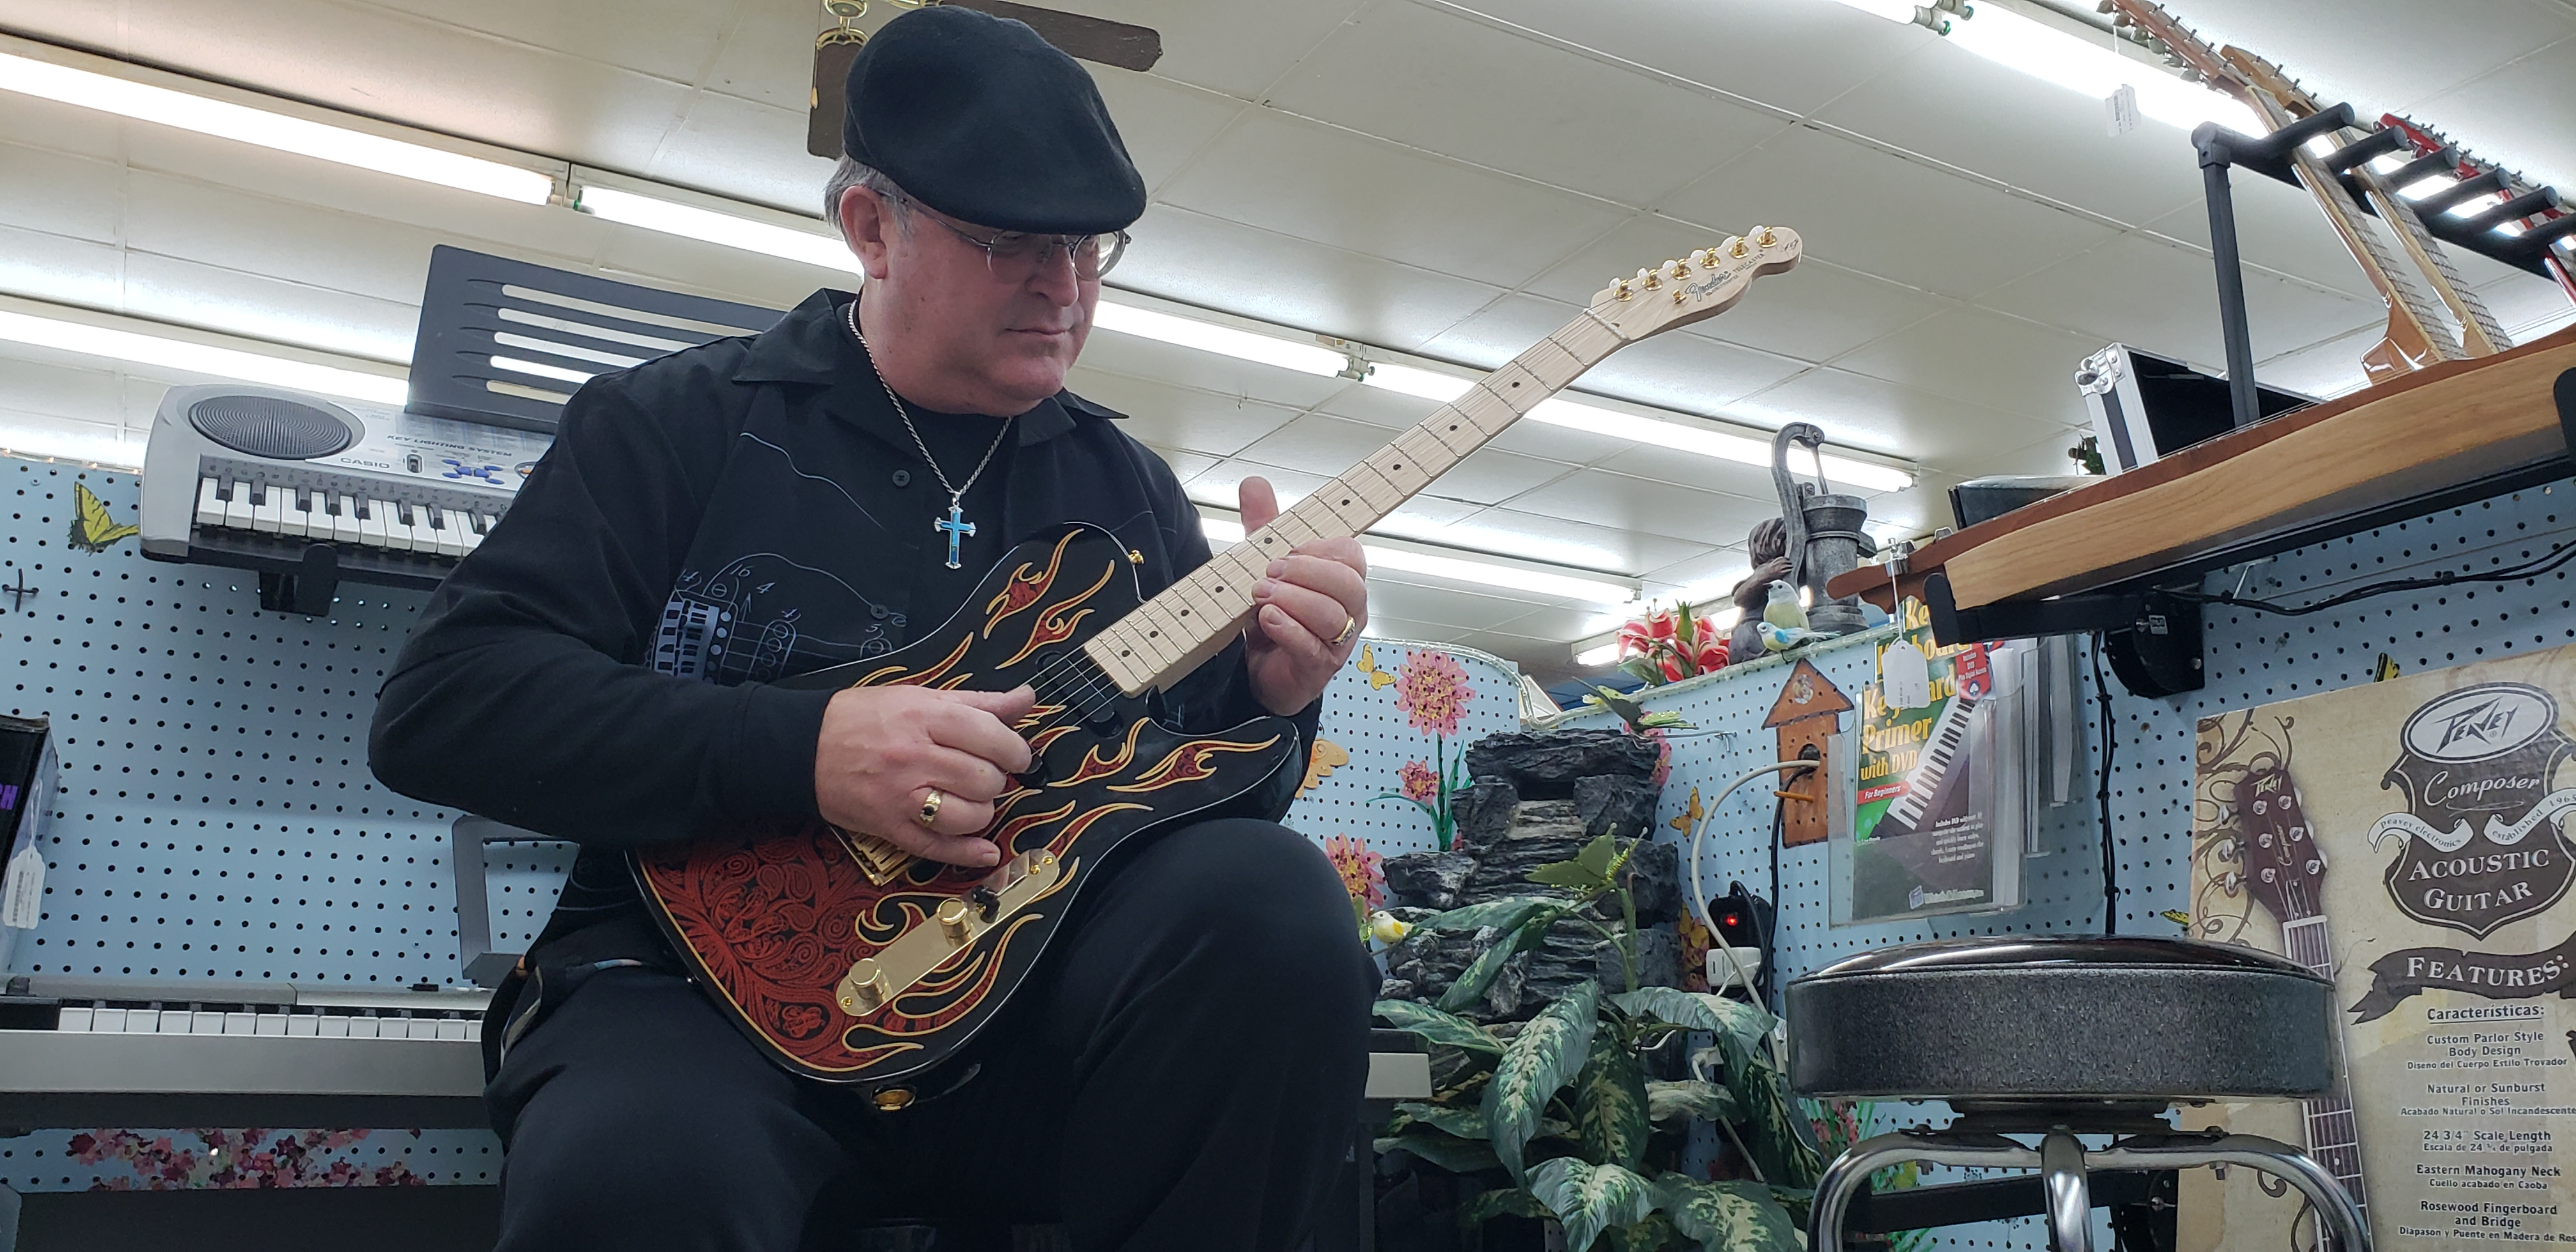 Smith strumming on his guitar at his pawn shop